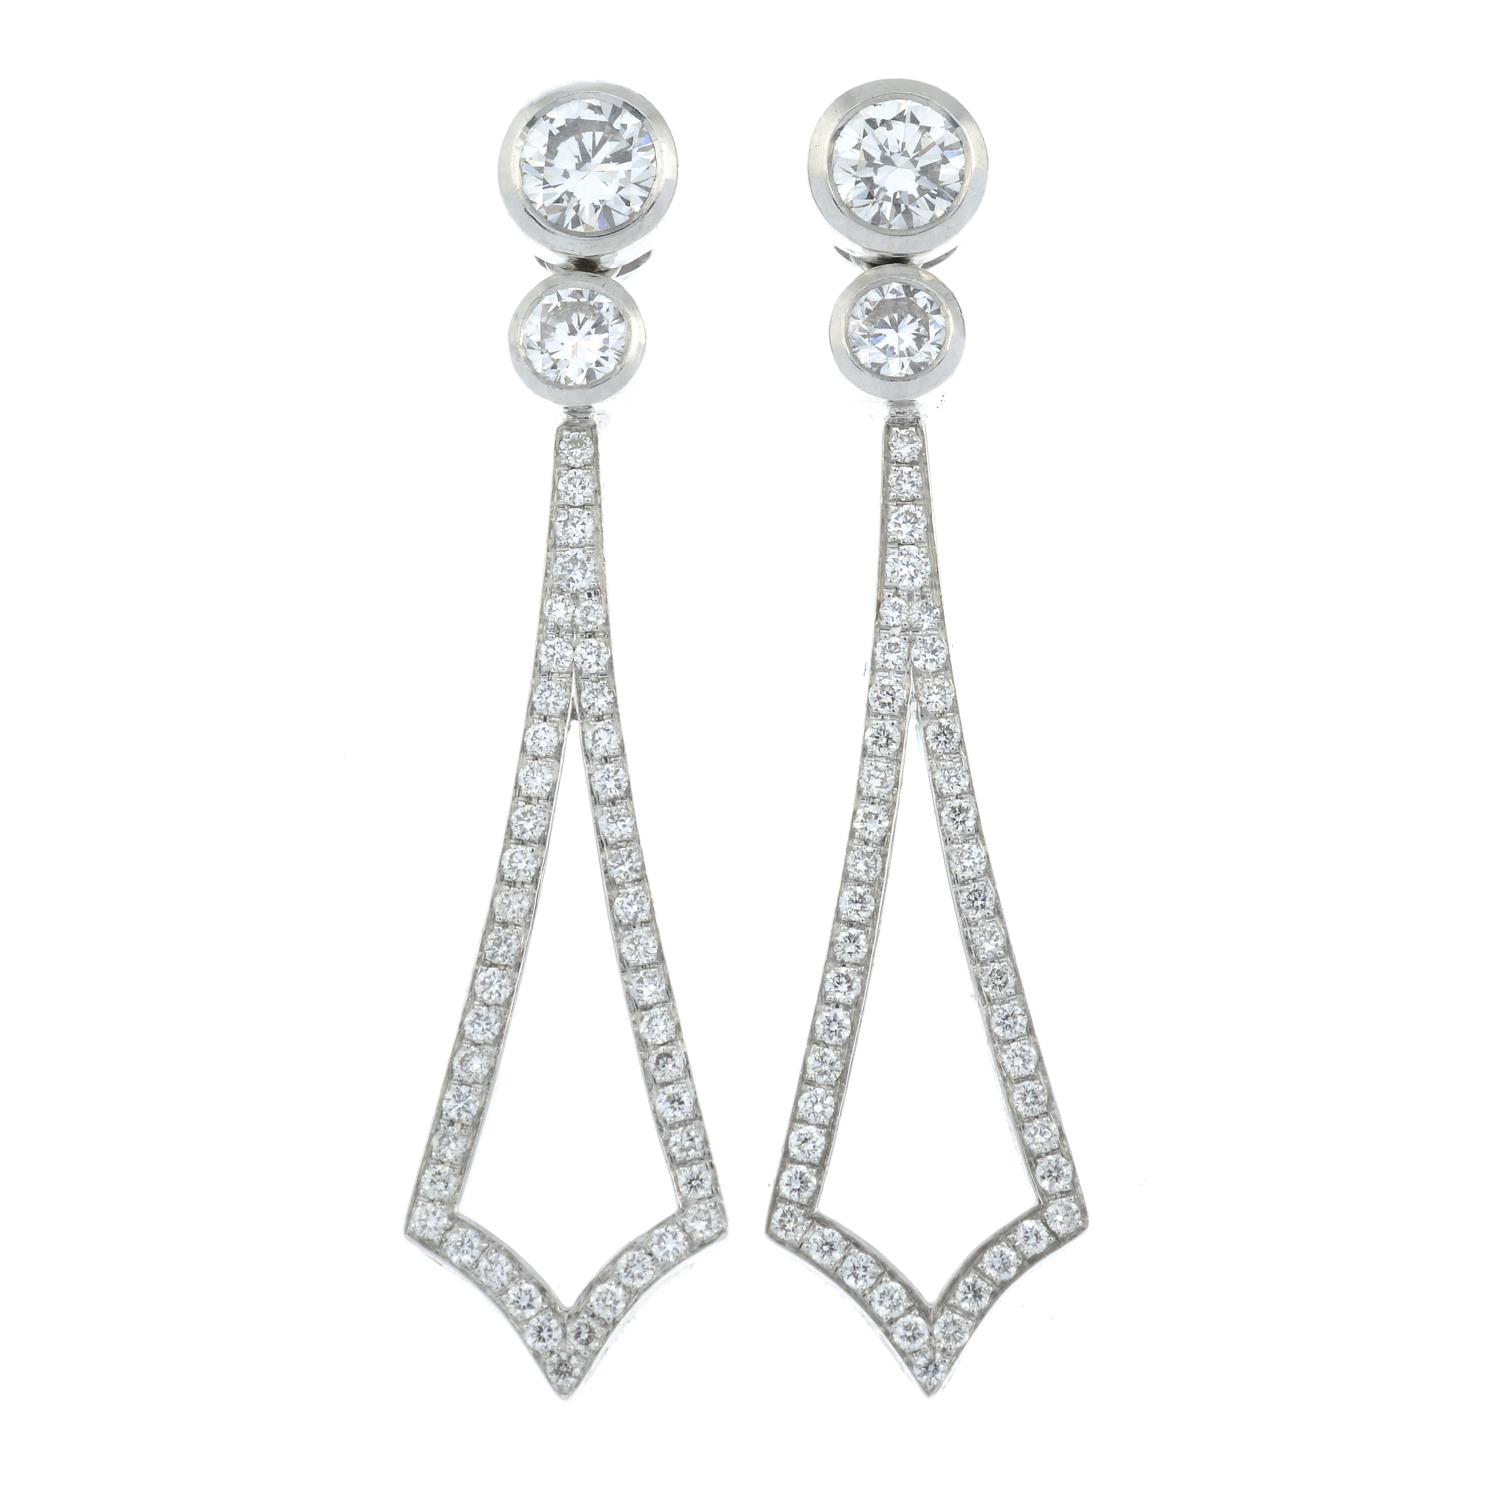 A pair of 18ct gold brilliant-cut diamond earrings, - Image 2 of 3